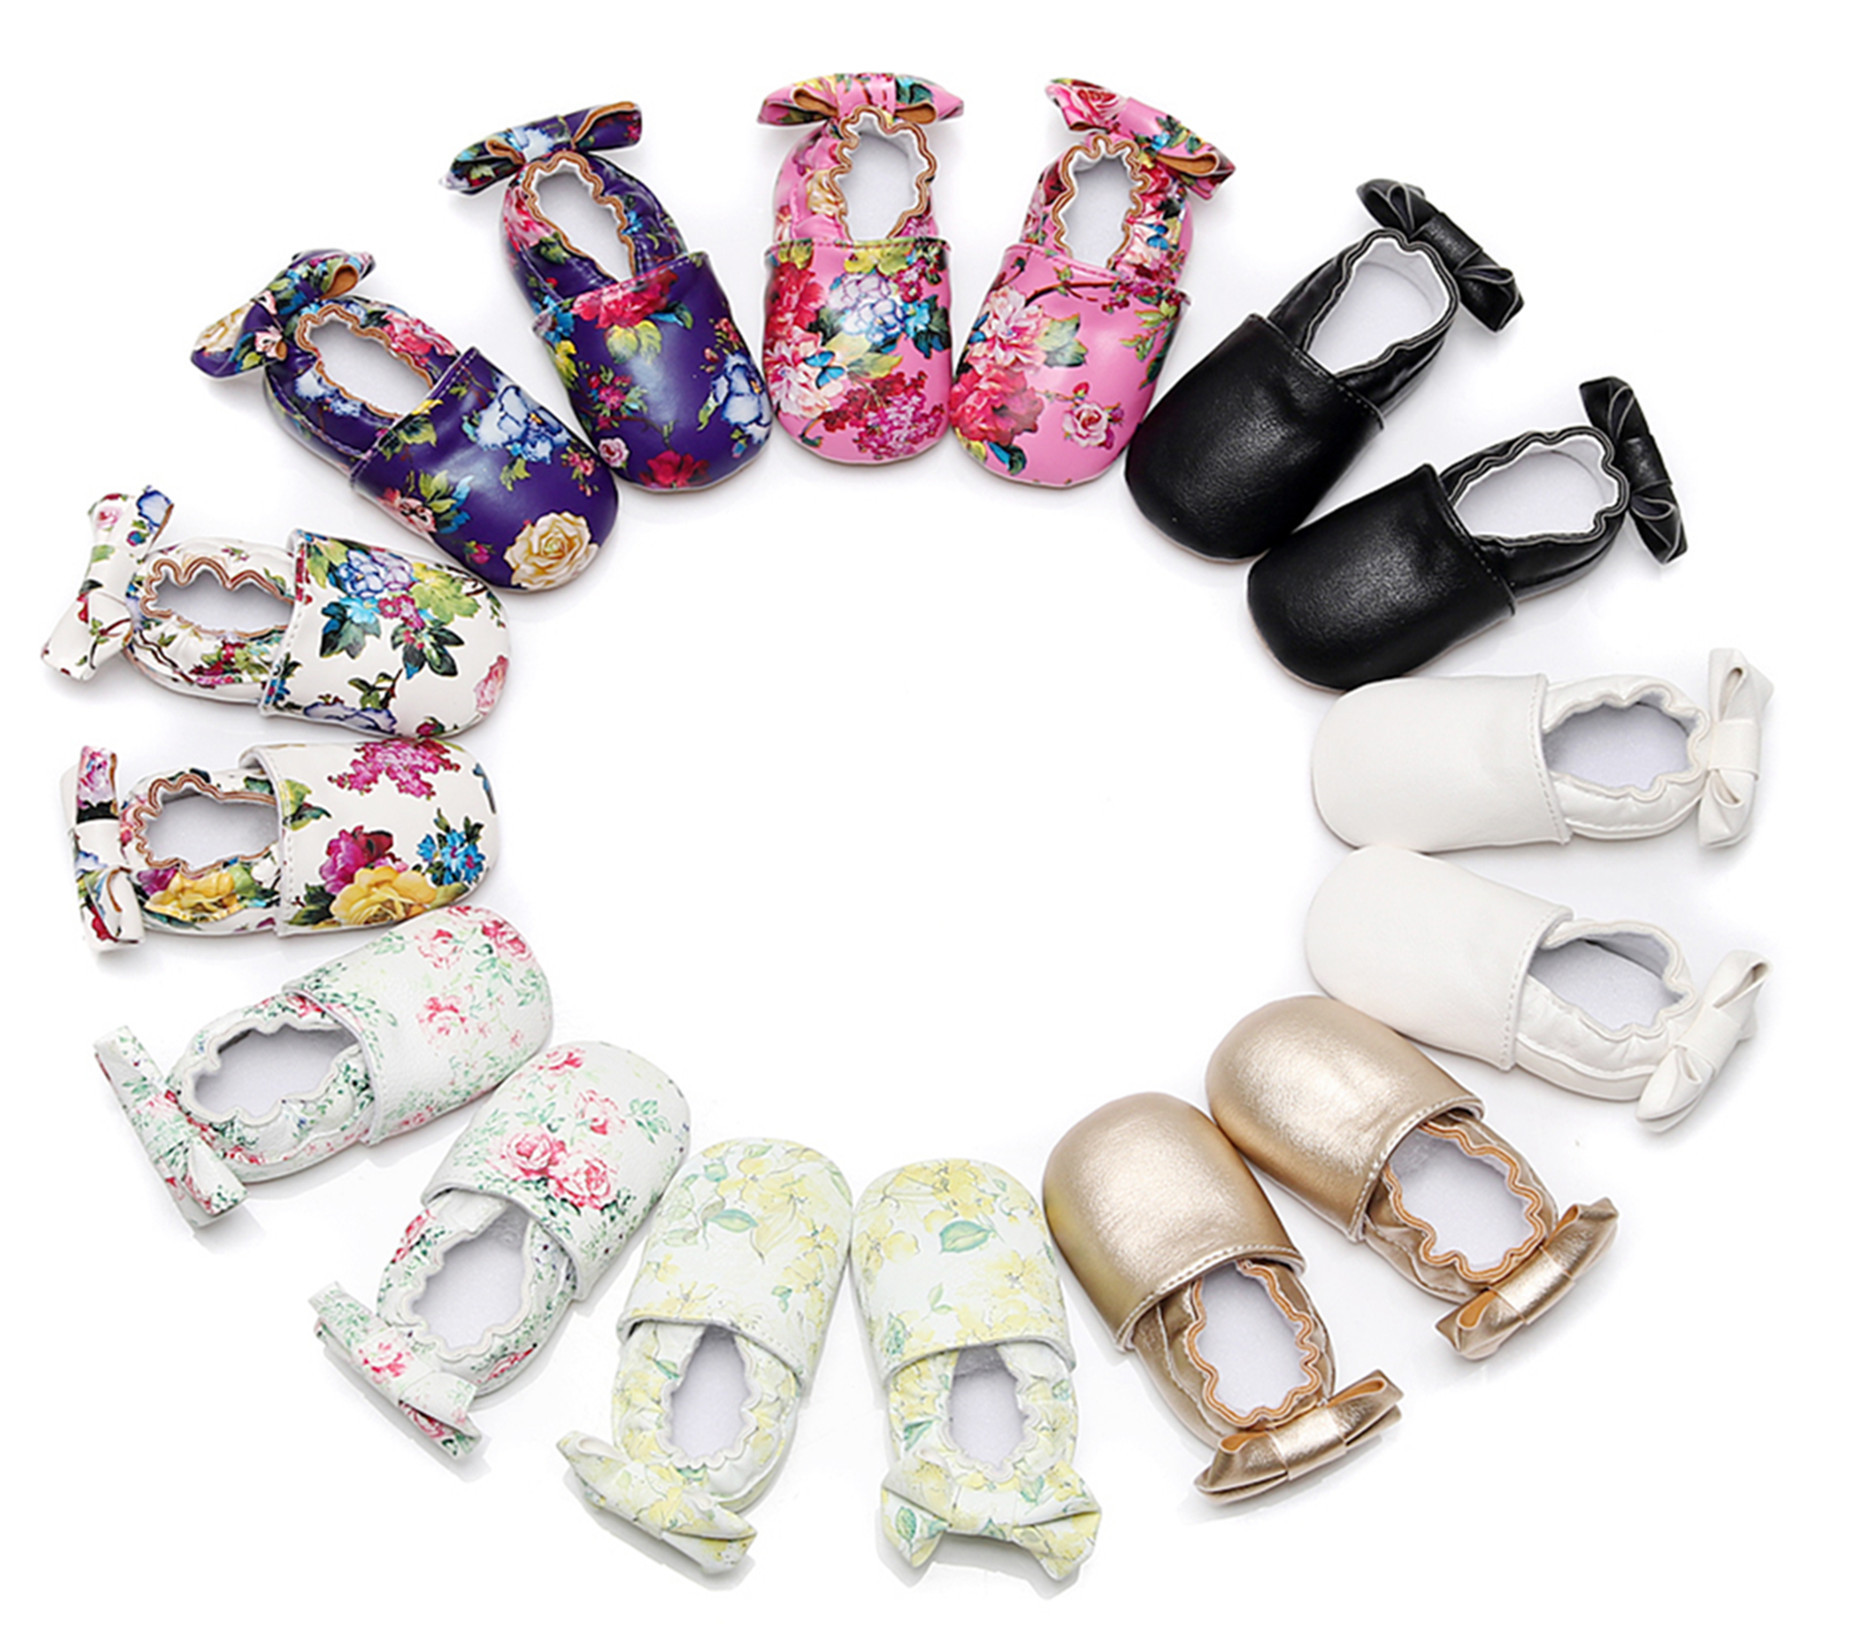 2018 New Multi Color Baby Soft Soles Infant Girls Floral Butterfly-knot Moccasins Toddler Shoes European and American Hot